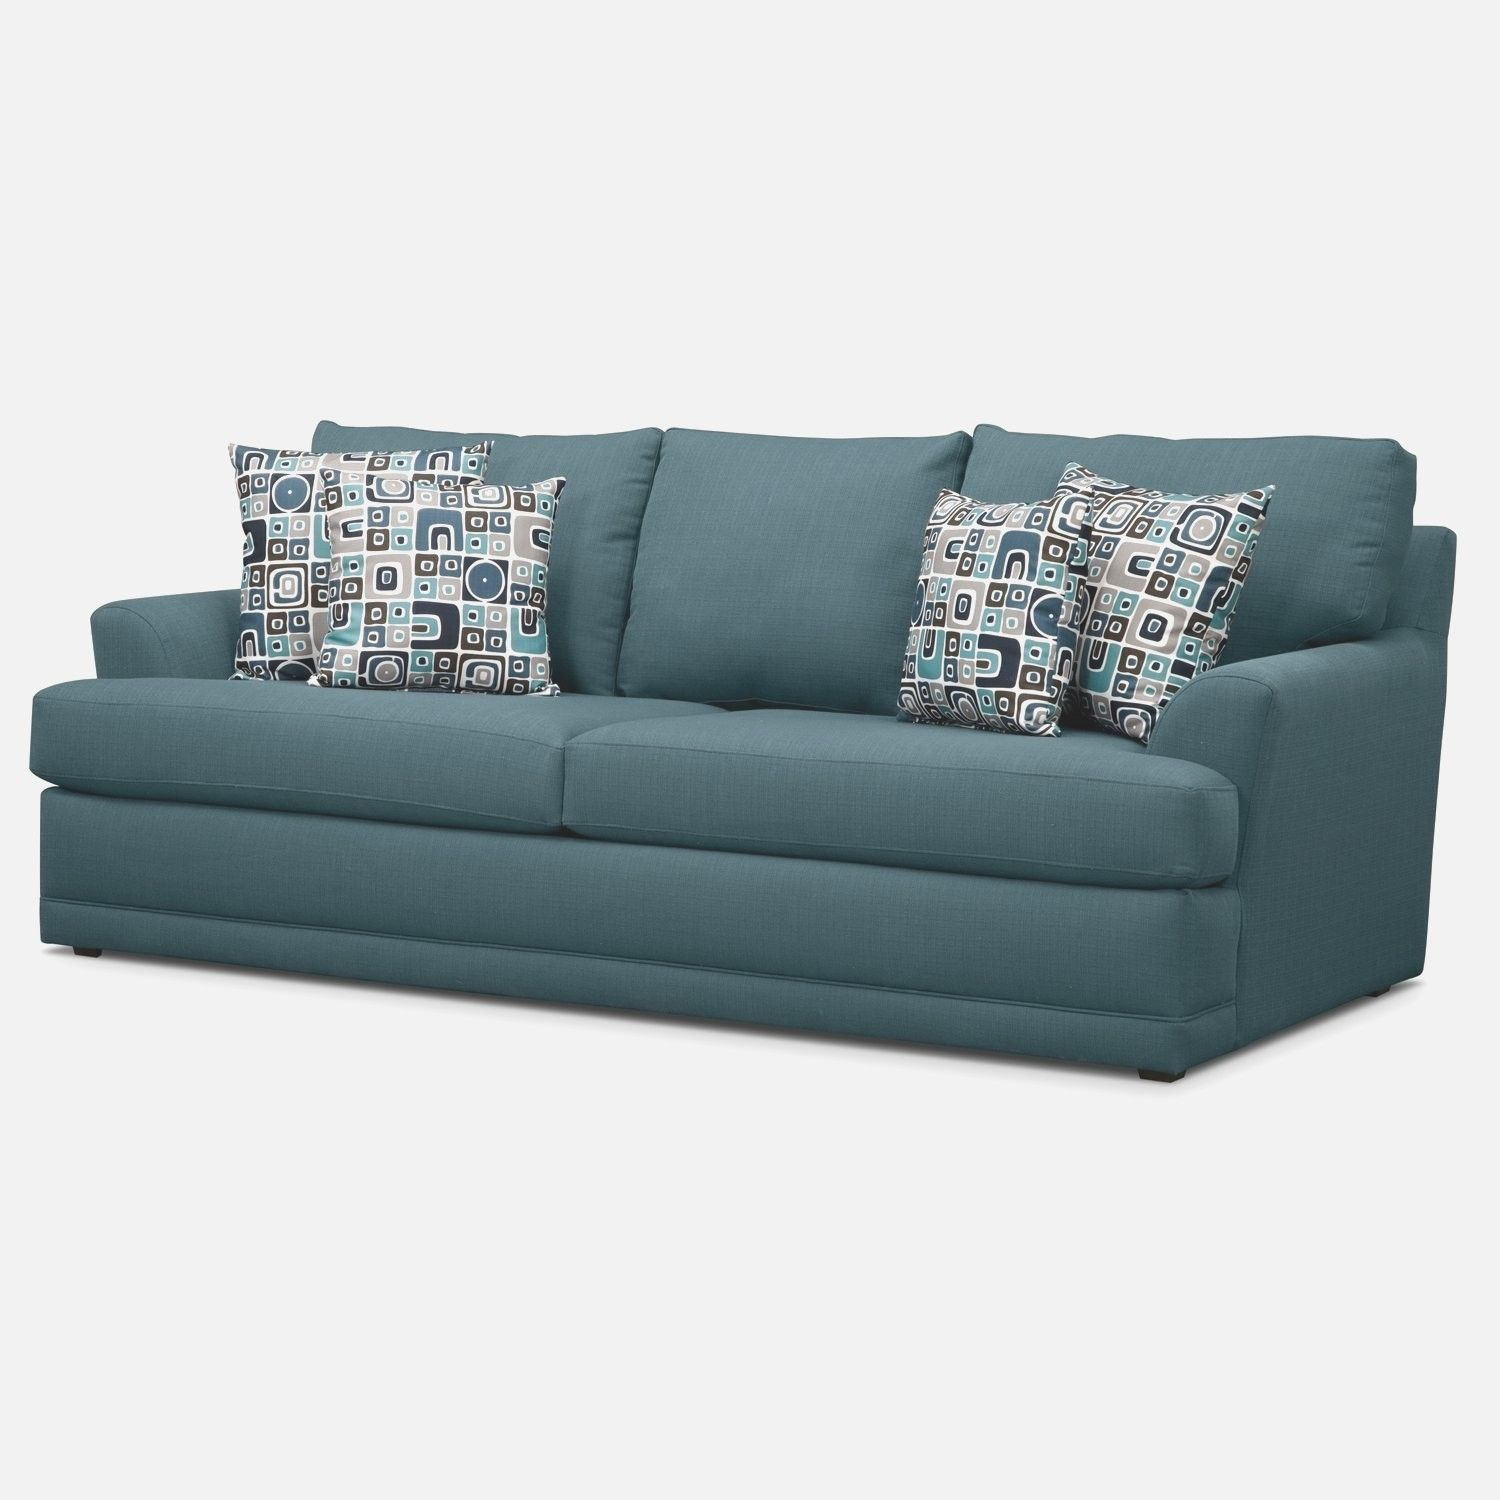 Sleeper Sofa Review Bobs Furniture Sleeper Sofa Bob S Discount Furniture Sleeper